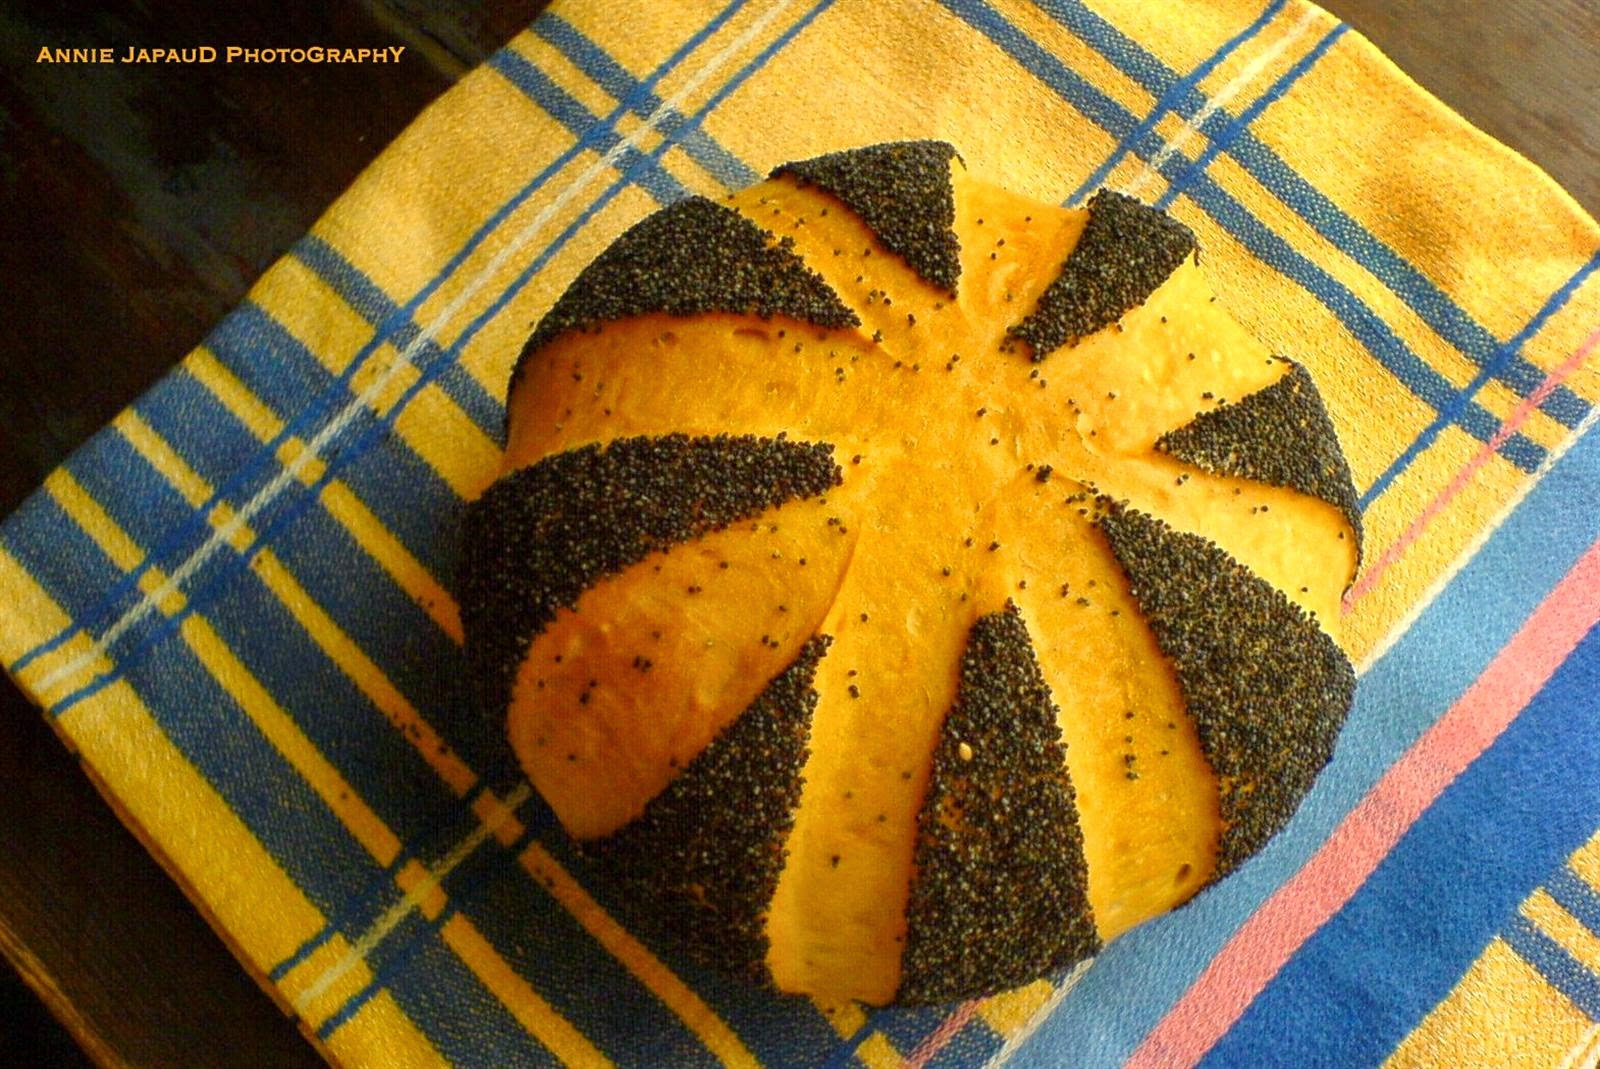 image of a bread covered in poppy seeds